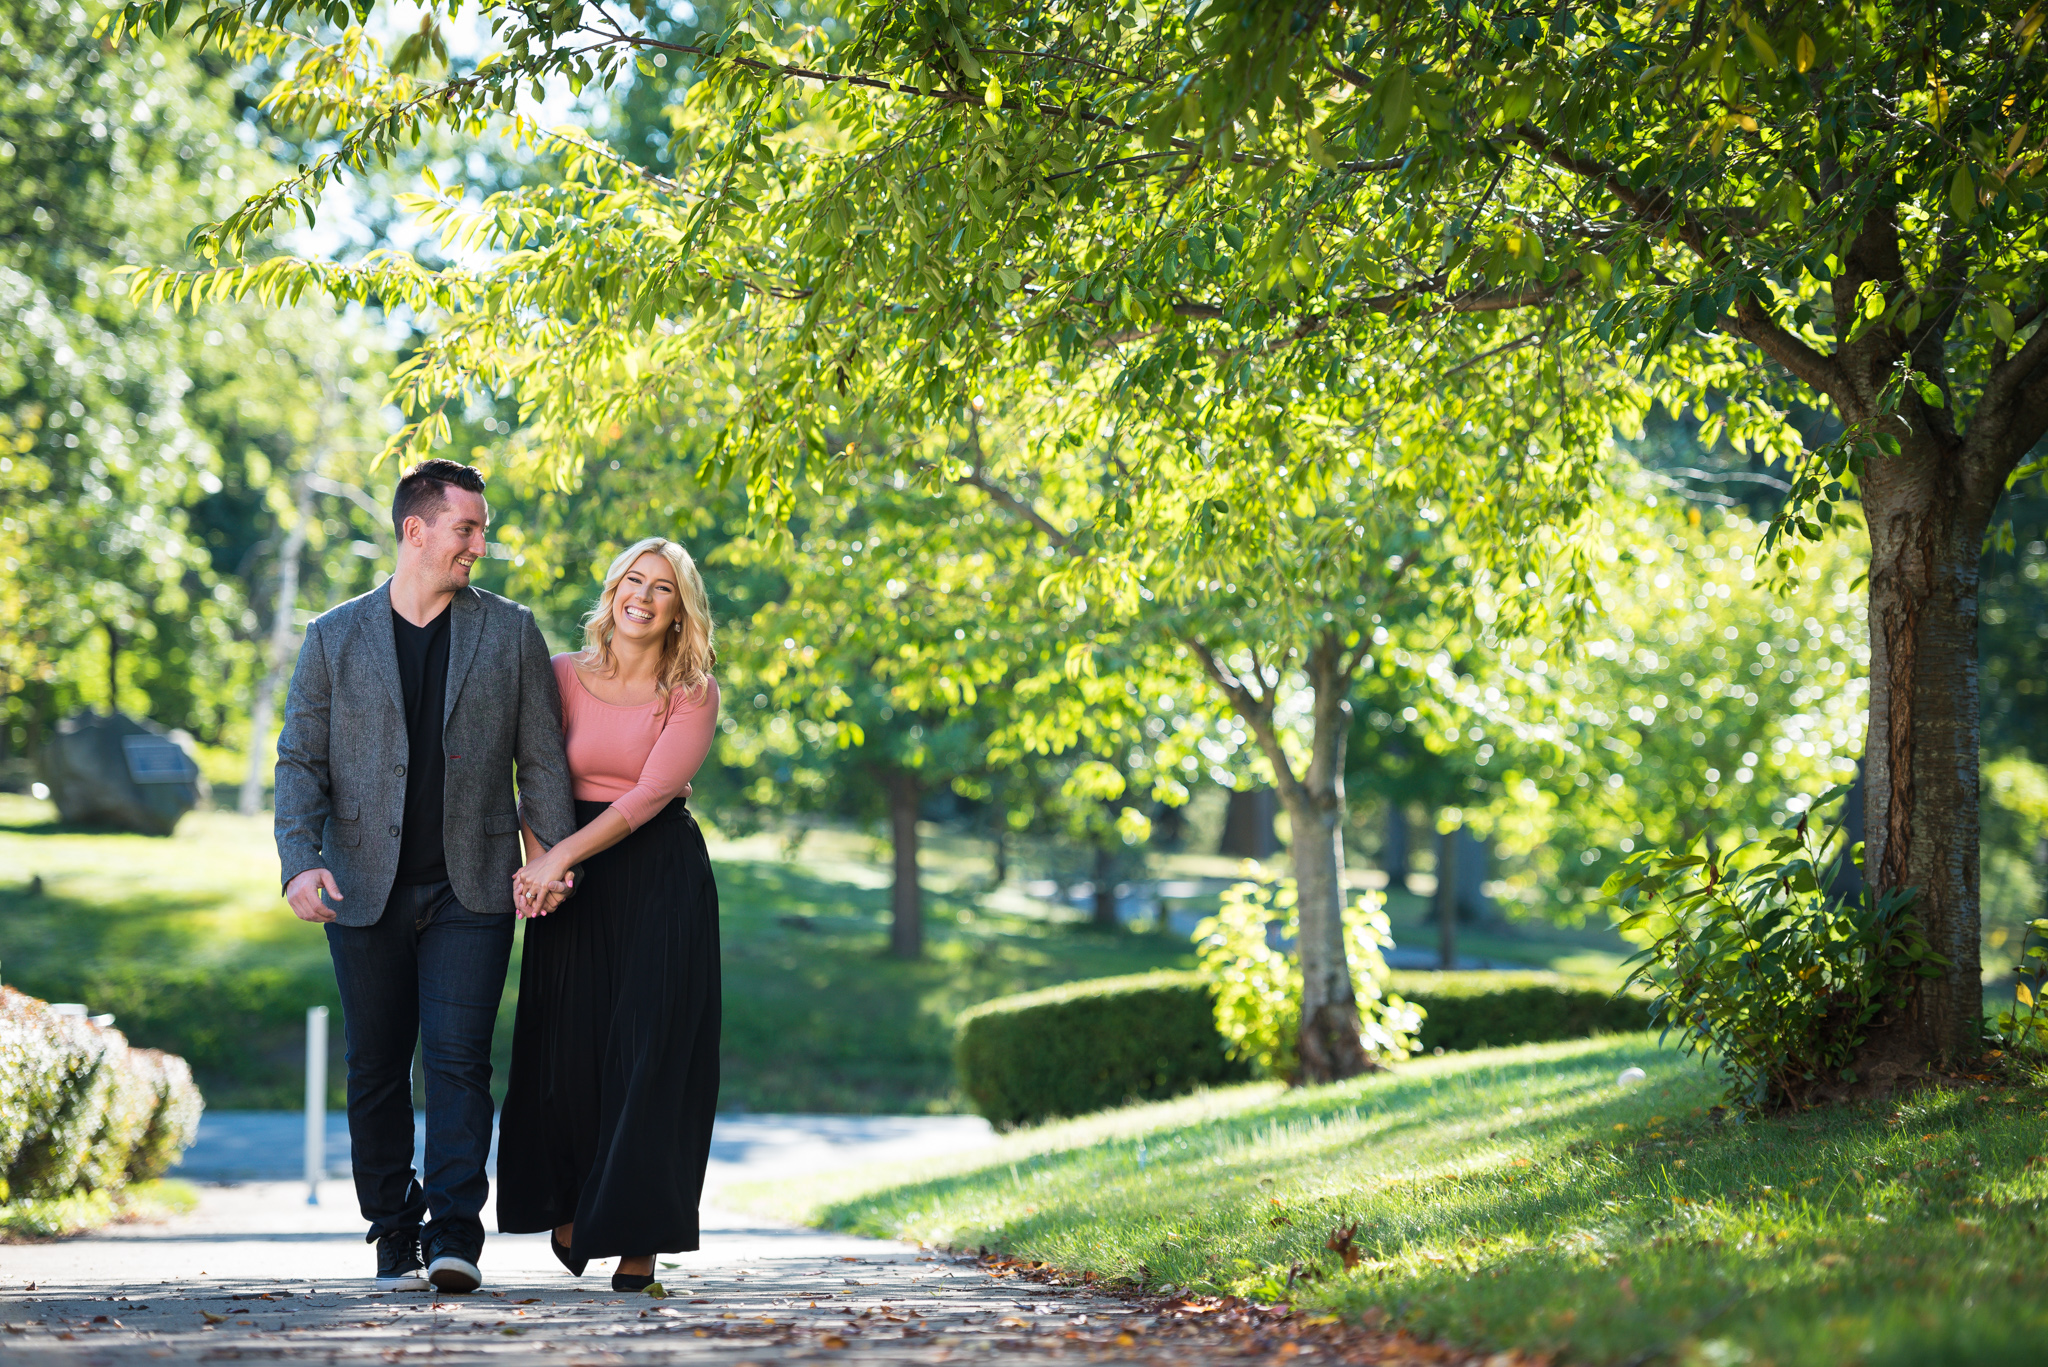 Mindy-Engagement-photography-wedding-photographer-northeast-PA-Scranton-Poconos-3.jpg